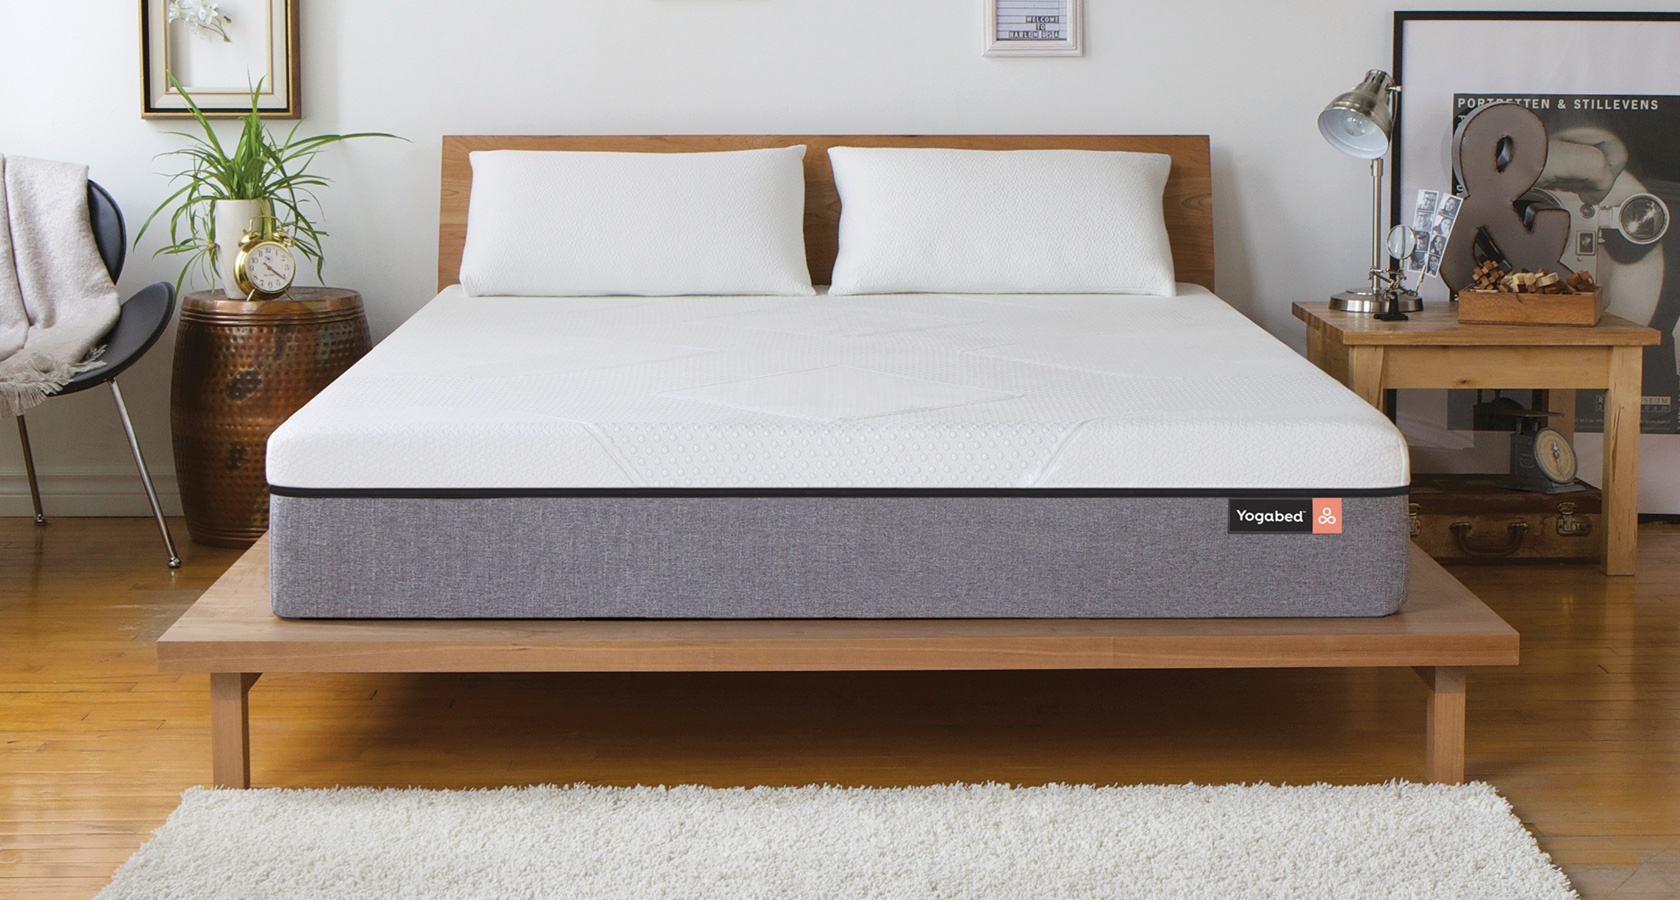 Marpac Yogabed Mattress Review